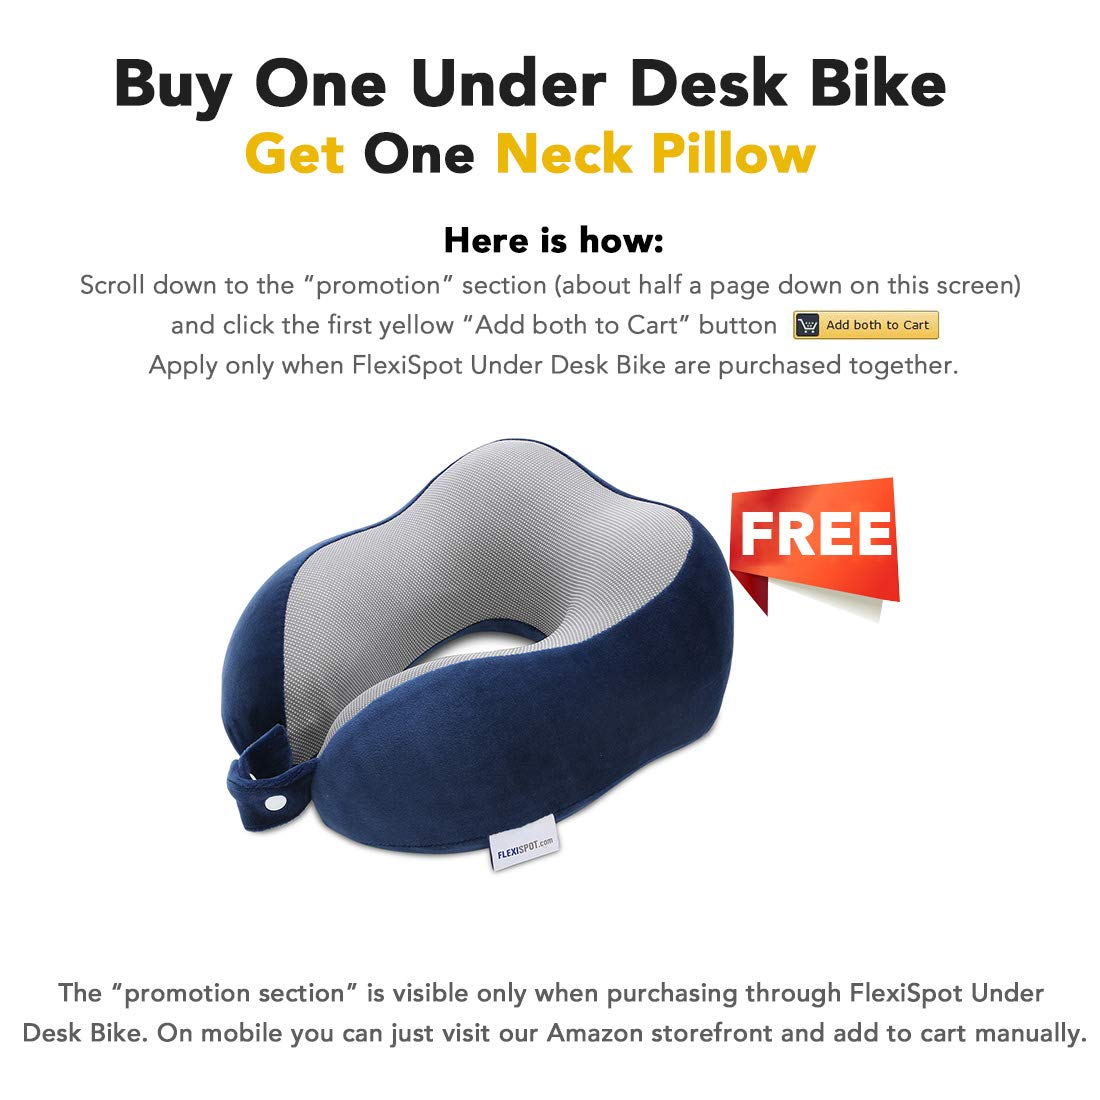 FLEXISPOT Home Office Under Desk Exercise Bike Height Adjustable Cycle - Deskcise Pro by FLEXISPOT (Image #2)